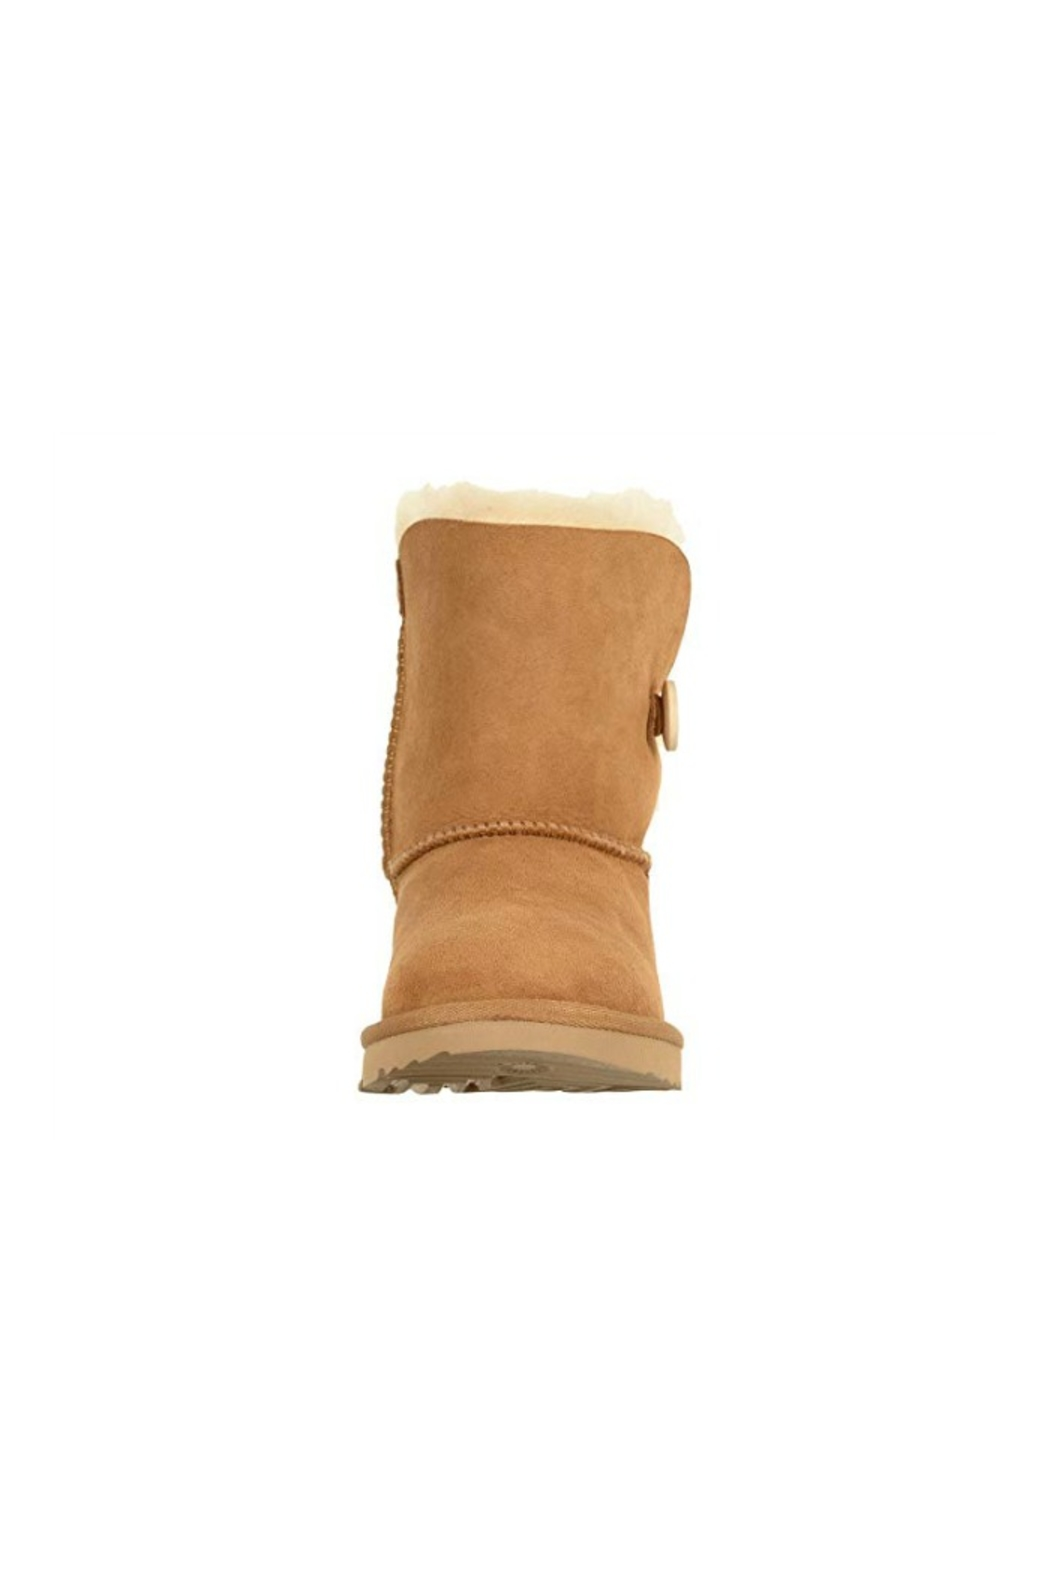 Ugg UGG K BAILEY BUTTON - Front Full Image